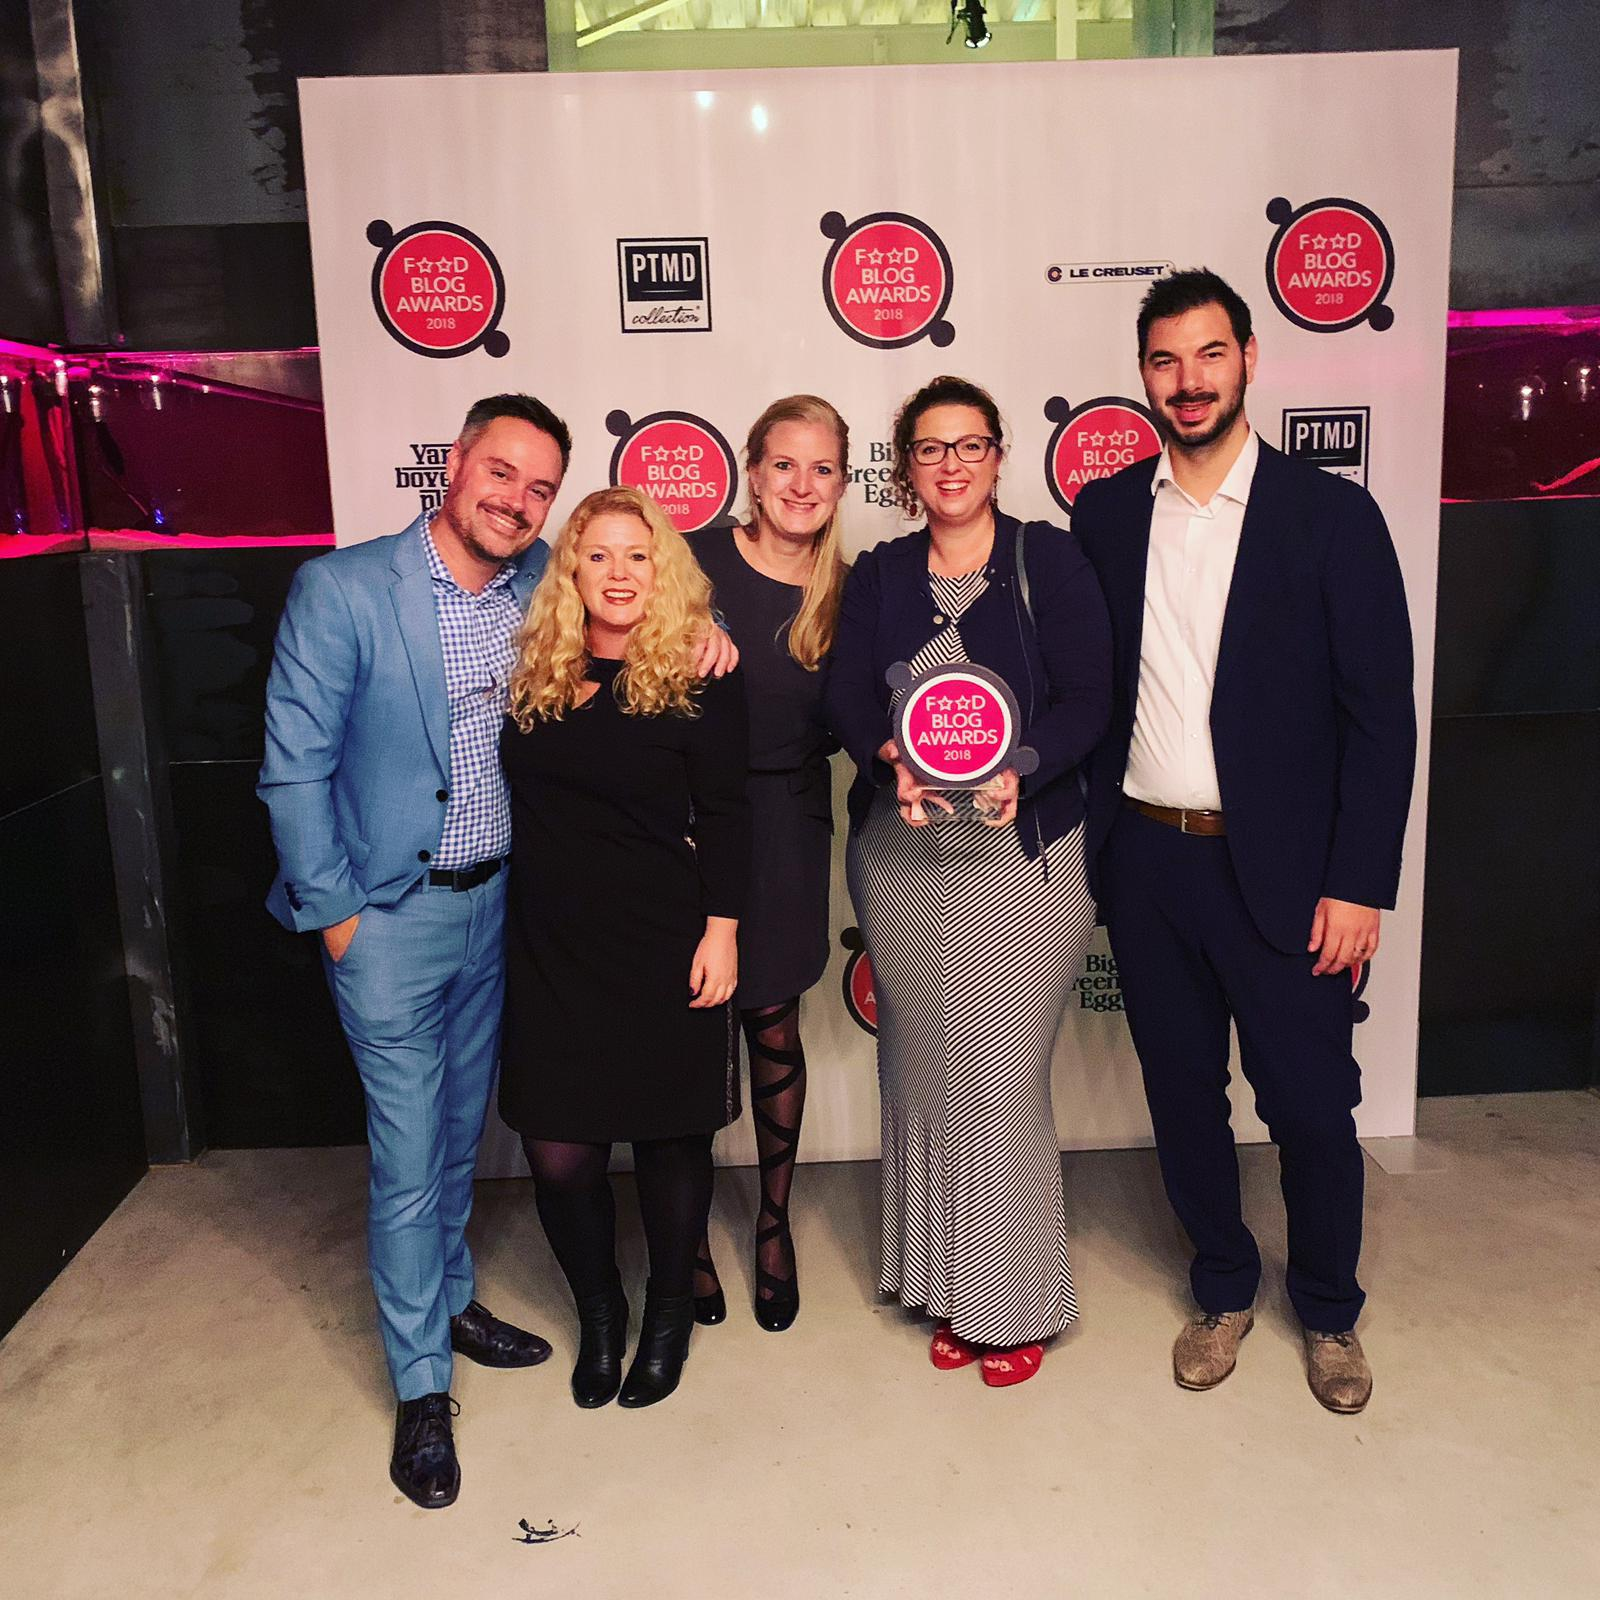 food blog awards gewonnen